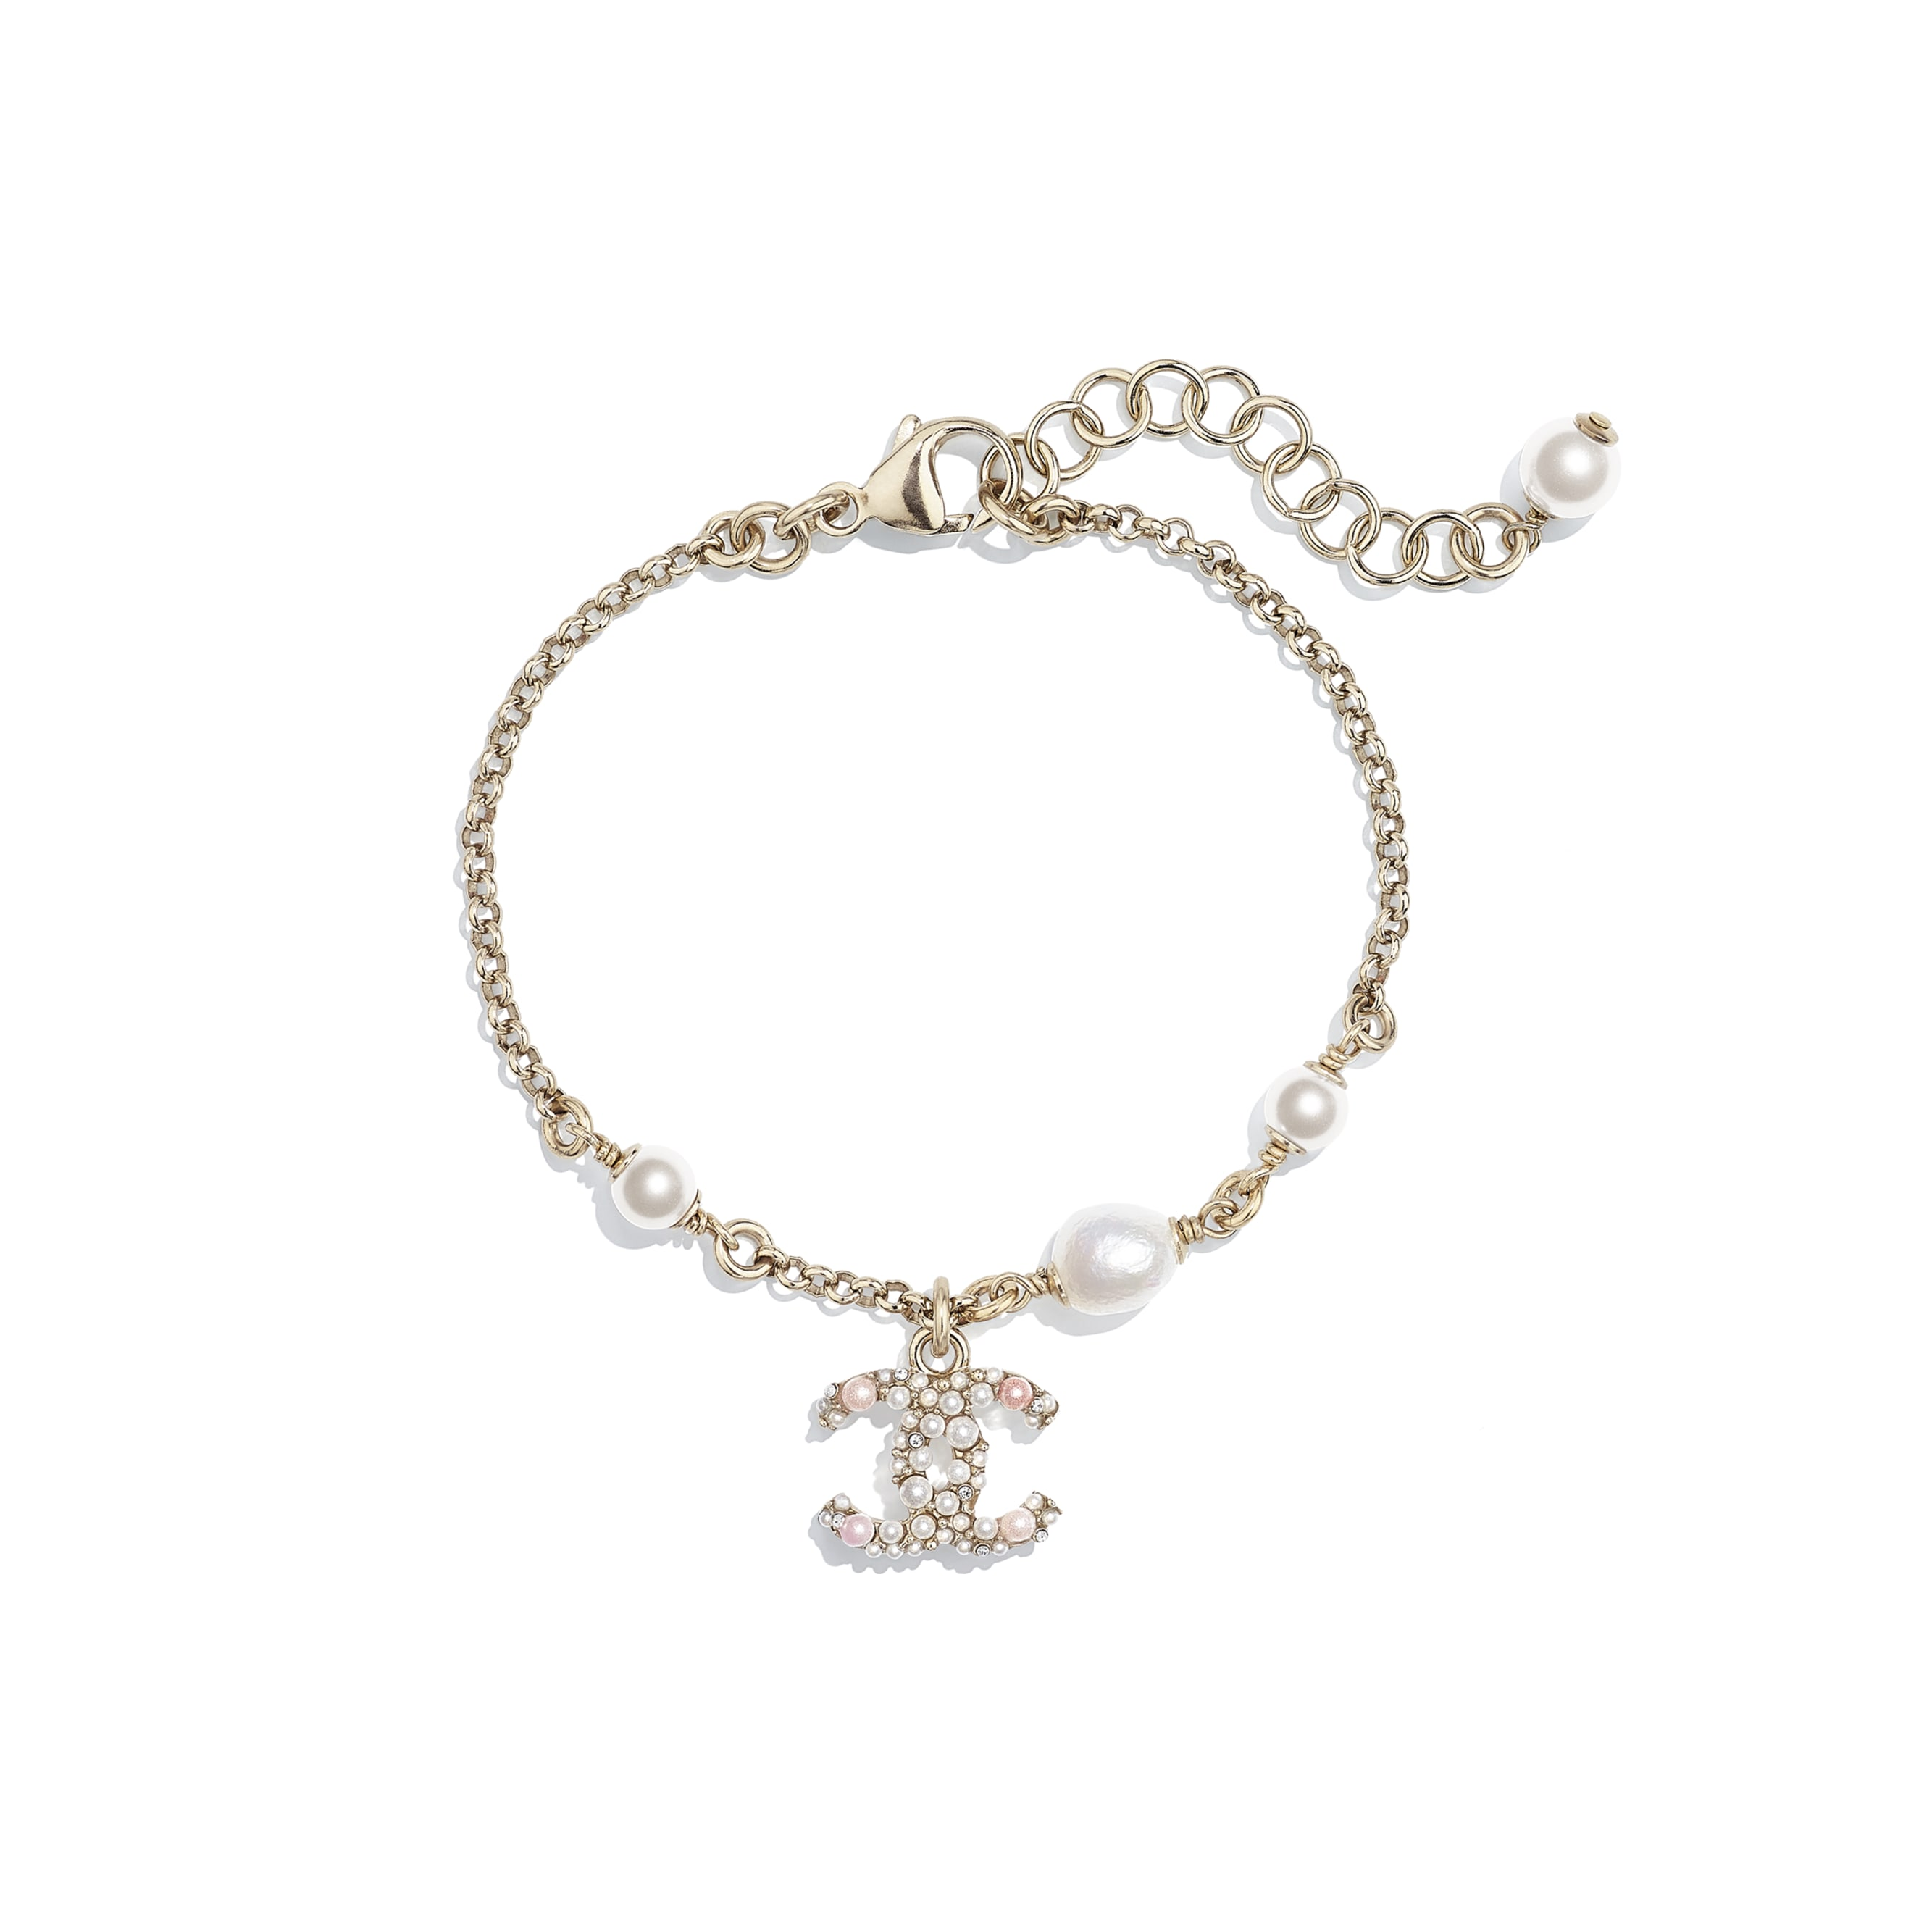 Bracelet - Gold, Pearly White, Pink & Crystal - Metal, Cultured Freshwater Pearls, Glass Pearls & Strass - CHANEL - Default view - see standard sized version